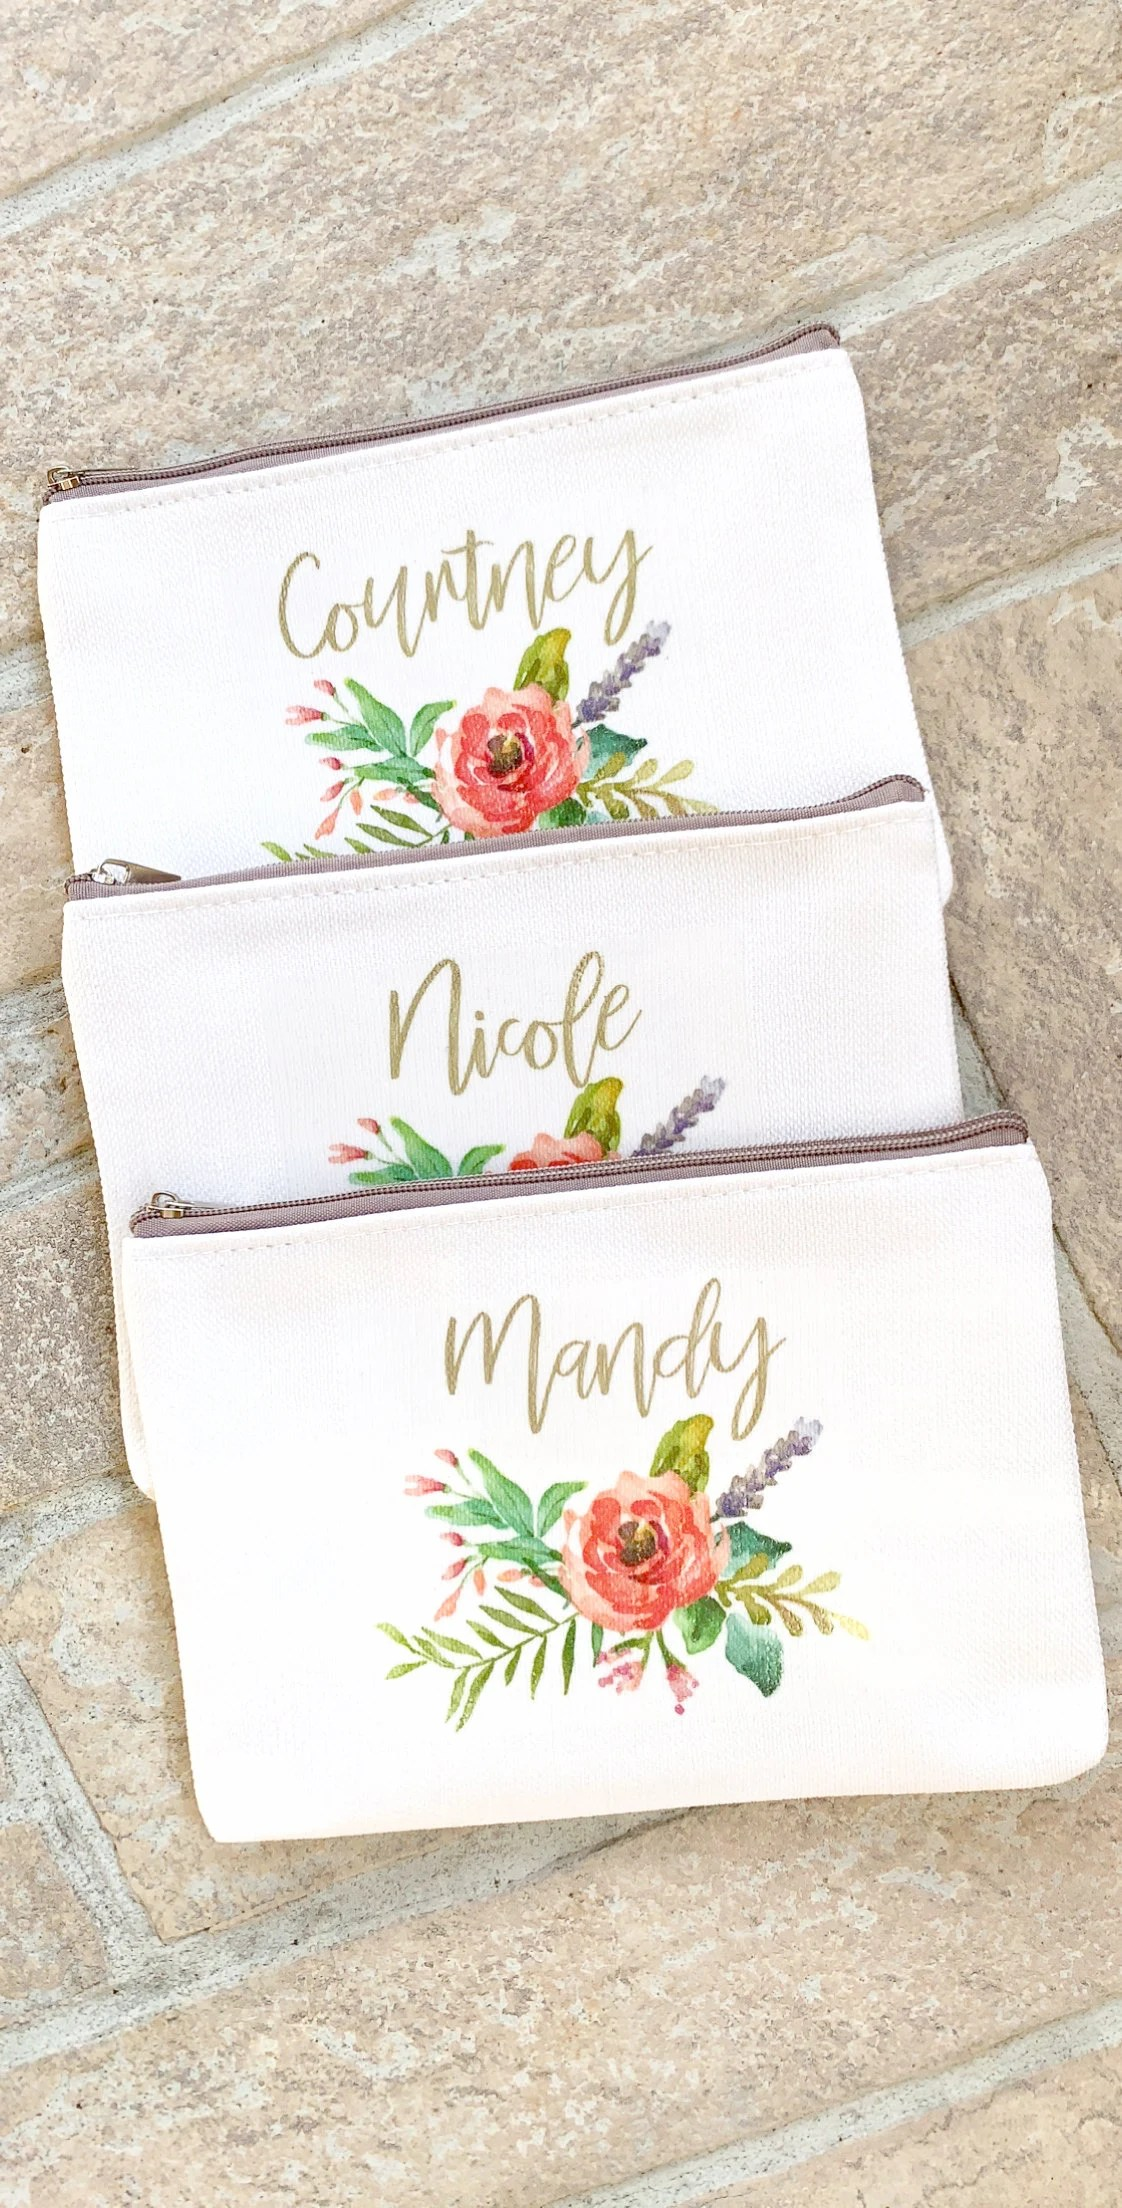 Personalized Makeup Bag Wedding Party Gift for Bridesmaids image 1